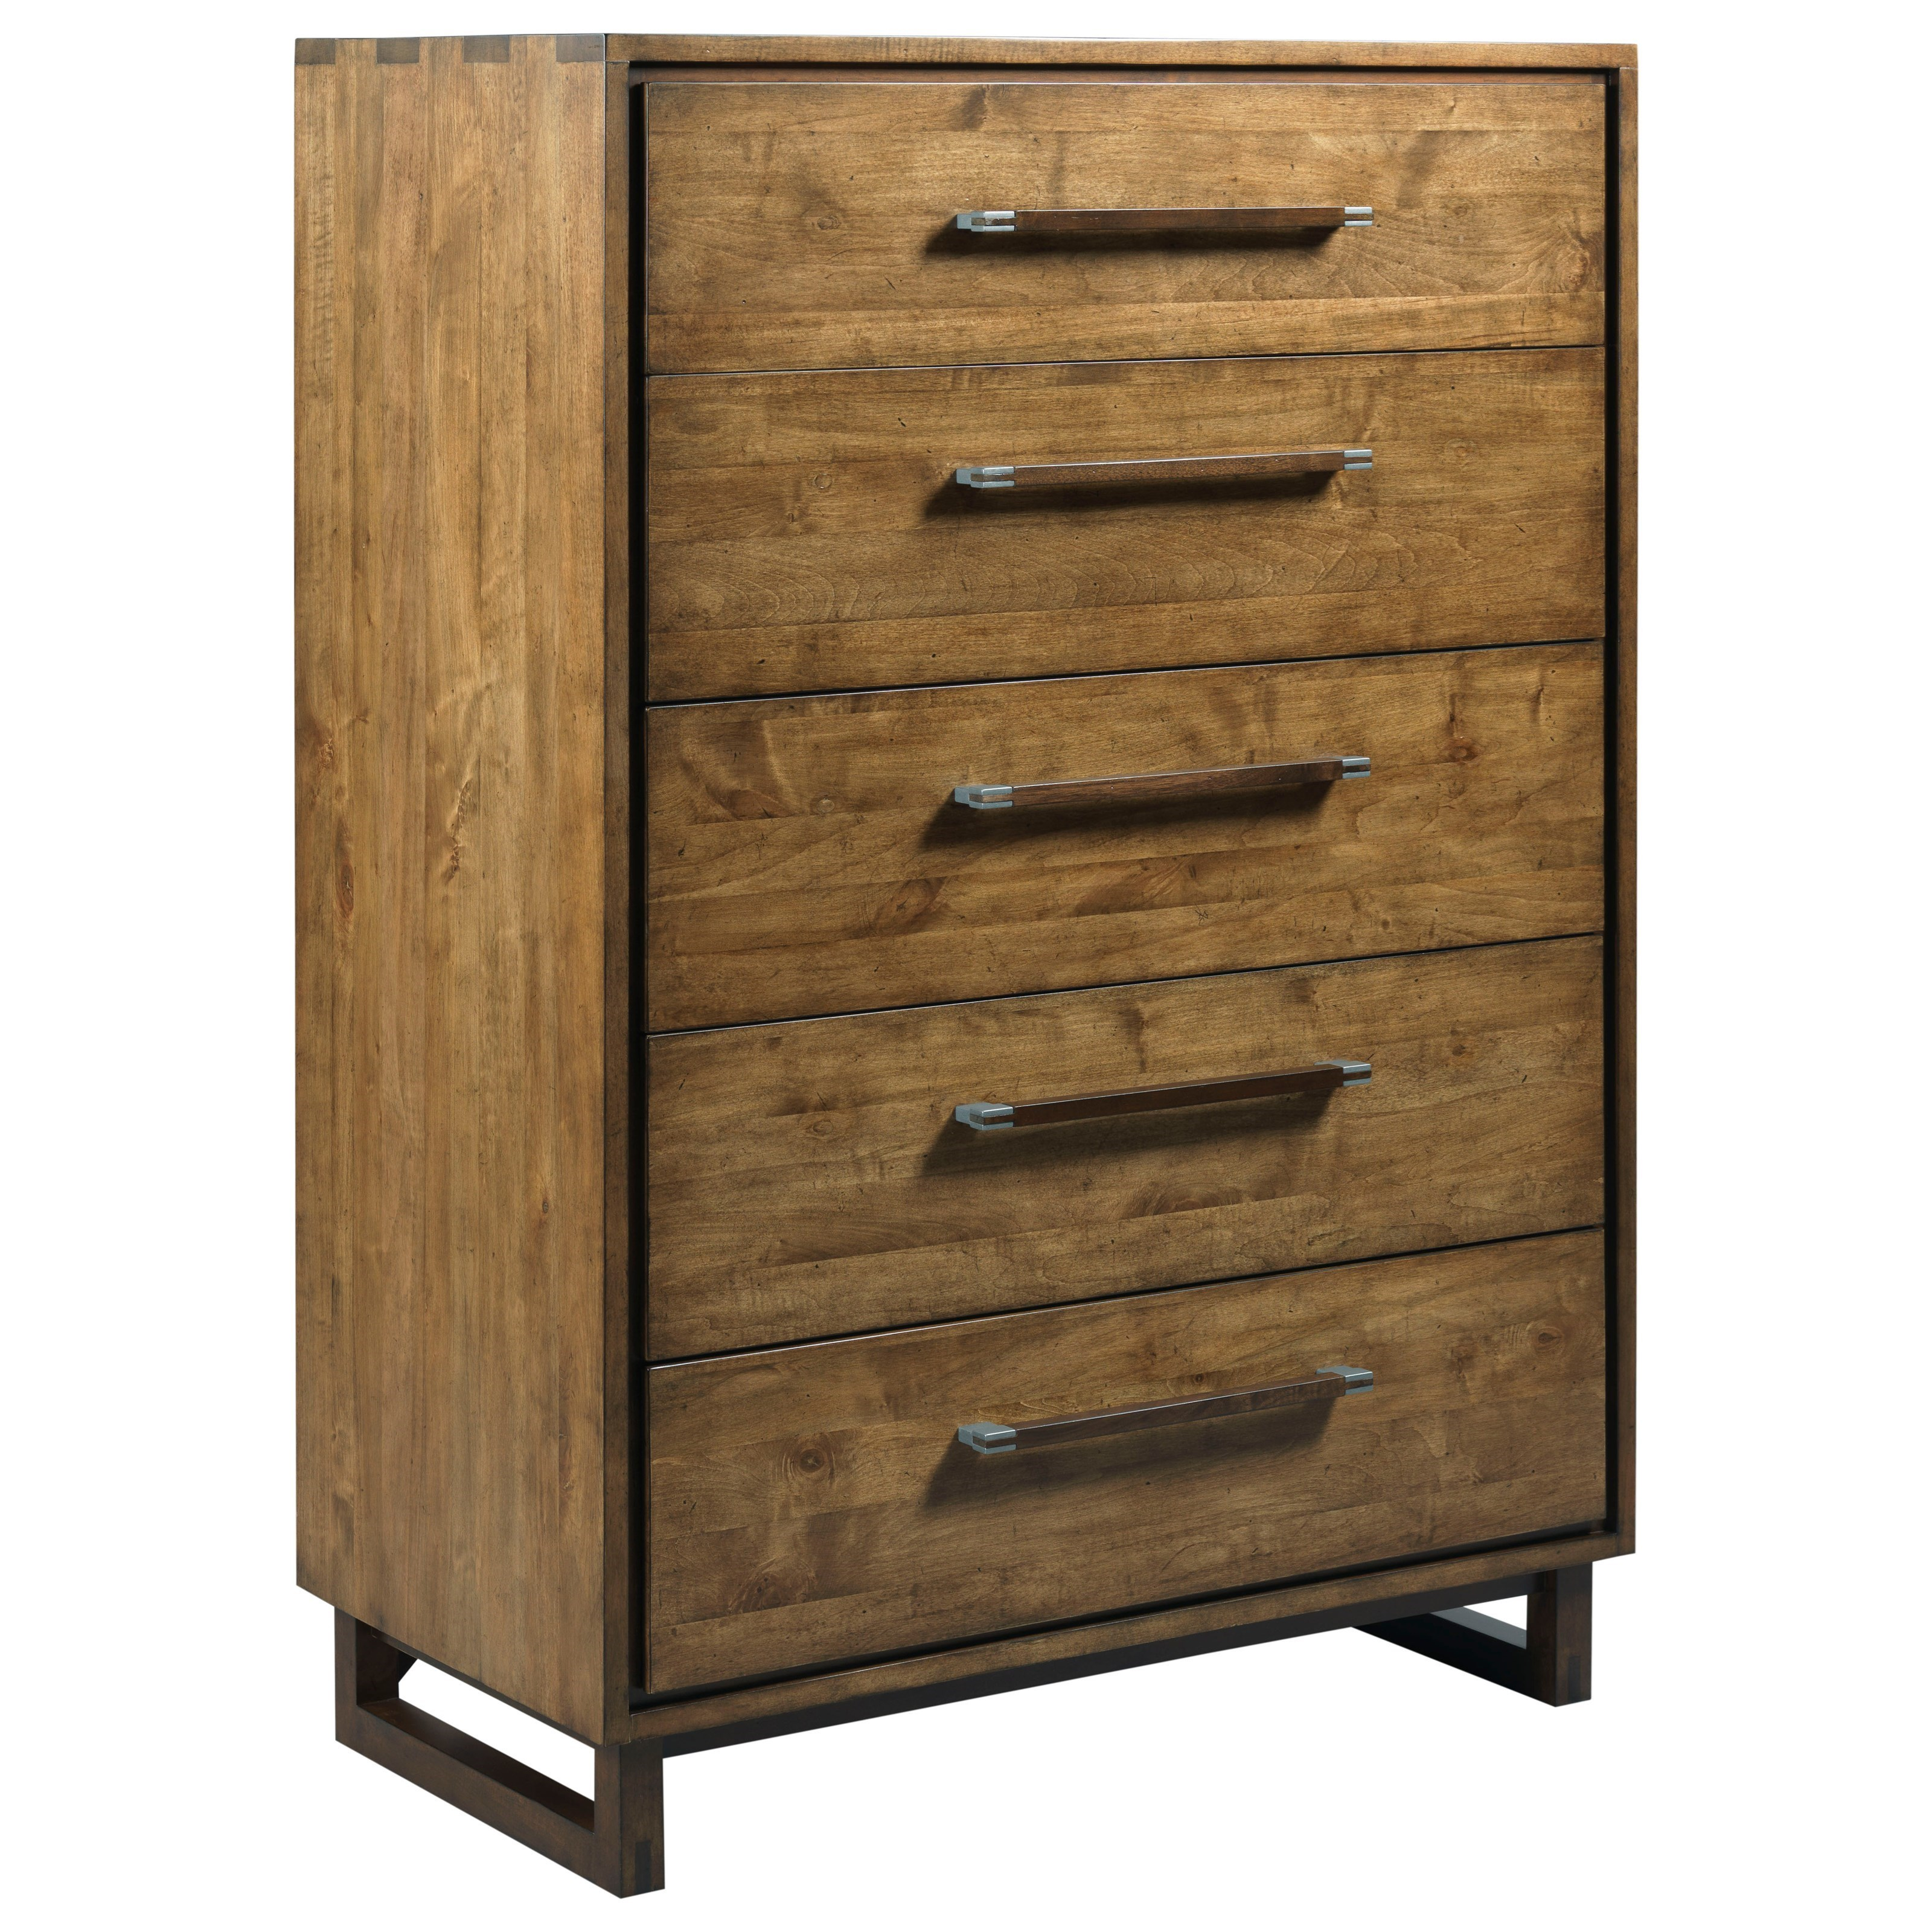 bed8408a08 Kincaid Furniture Traverse Tradesman Modern Craftsman Five Drawer Chest  with Drawer Dividers